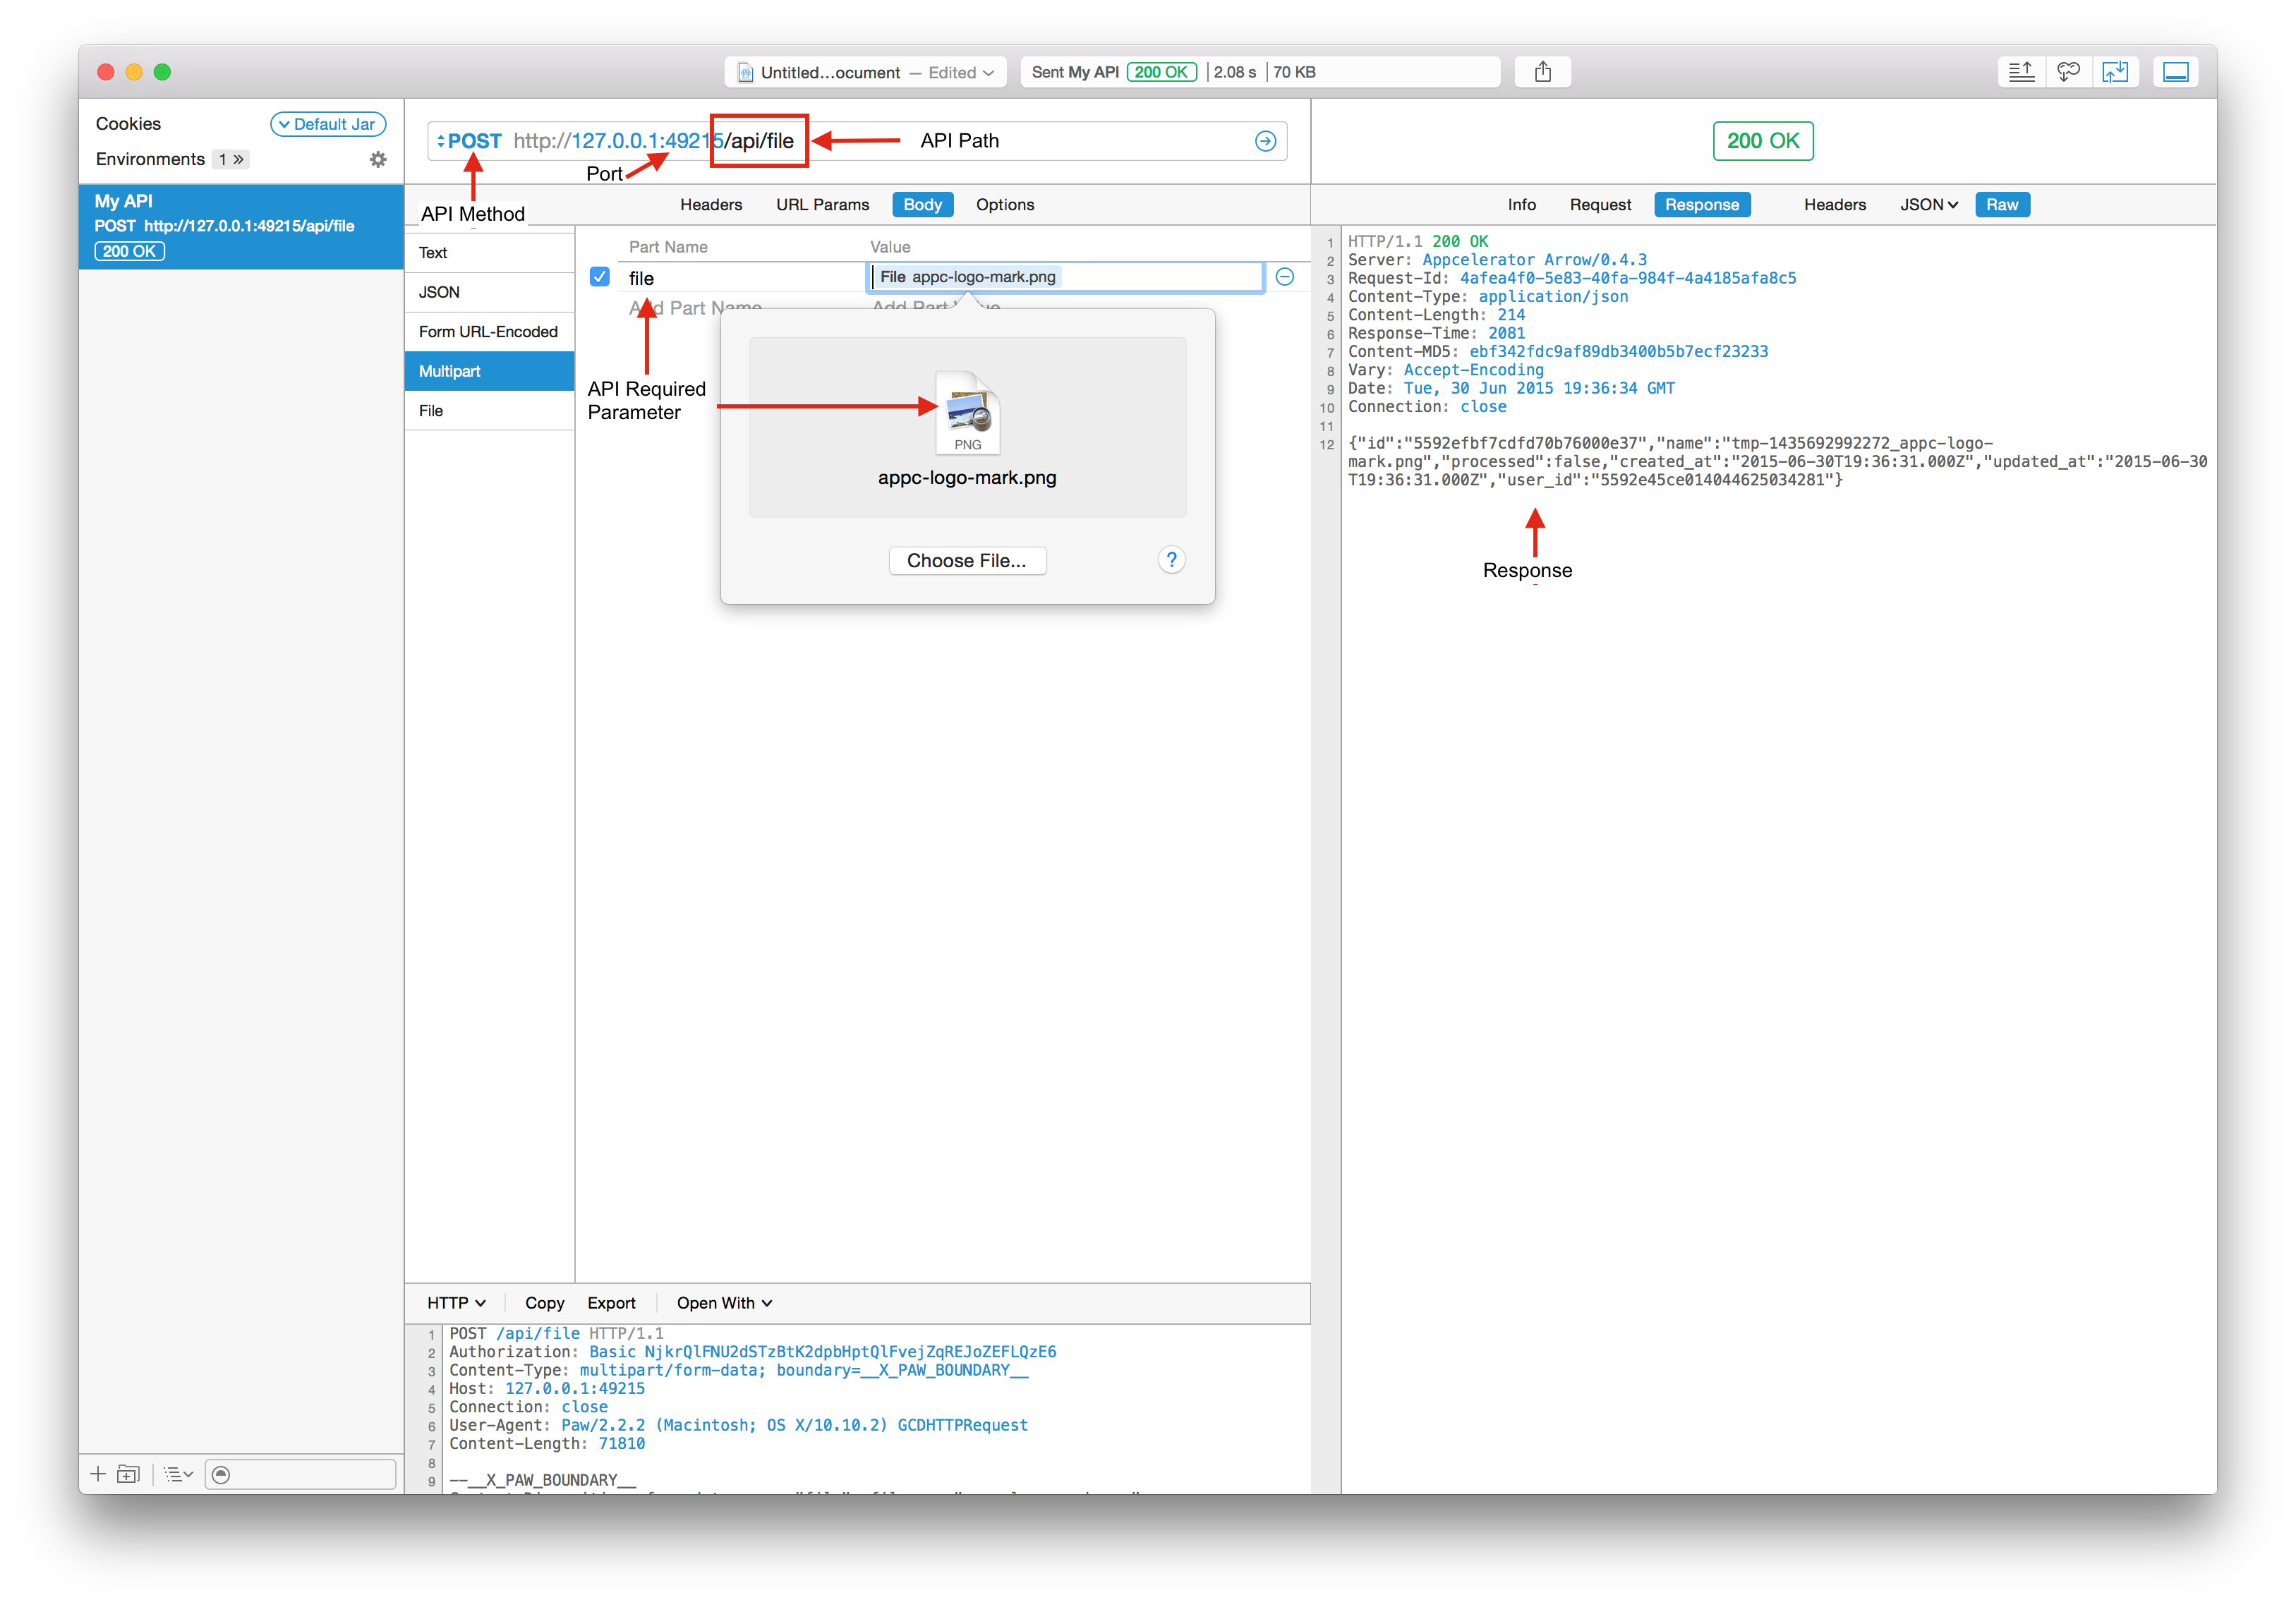 Testing the API in Rest Client